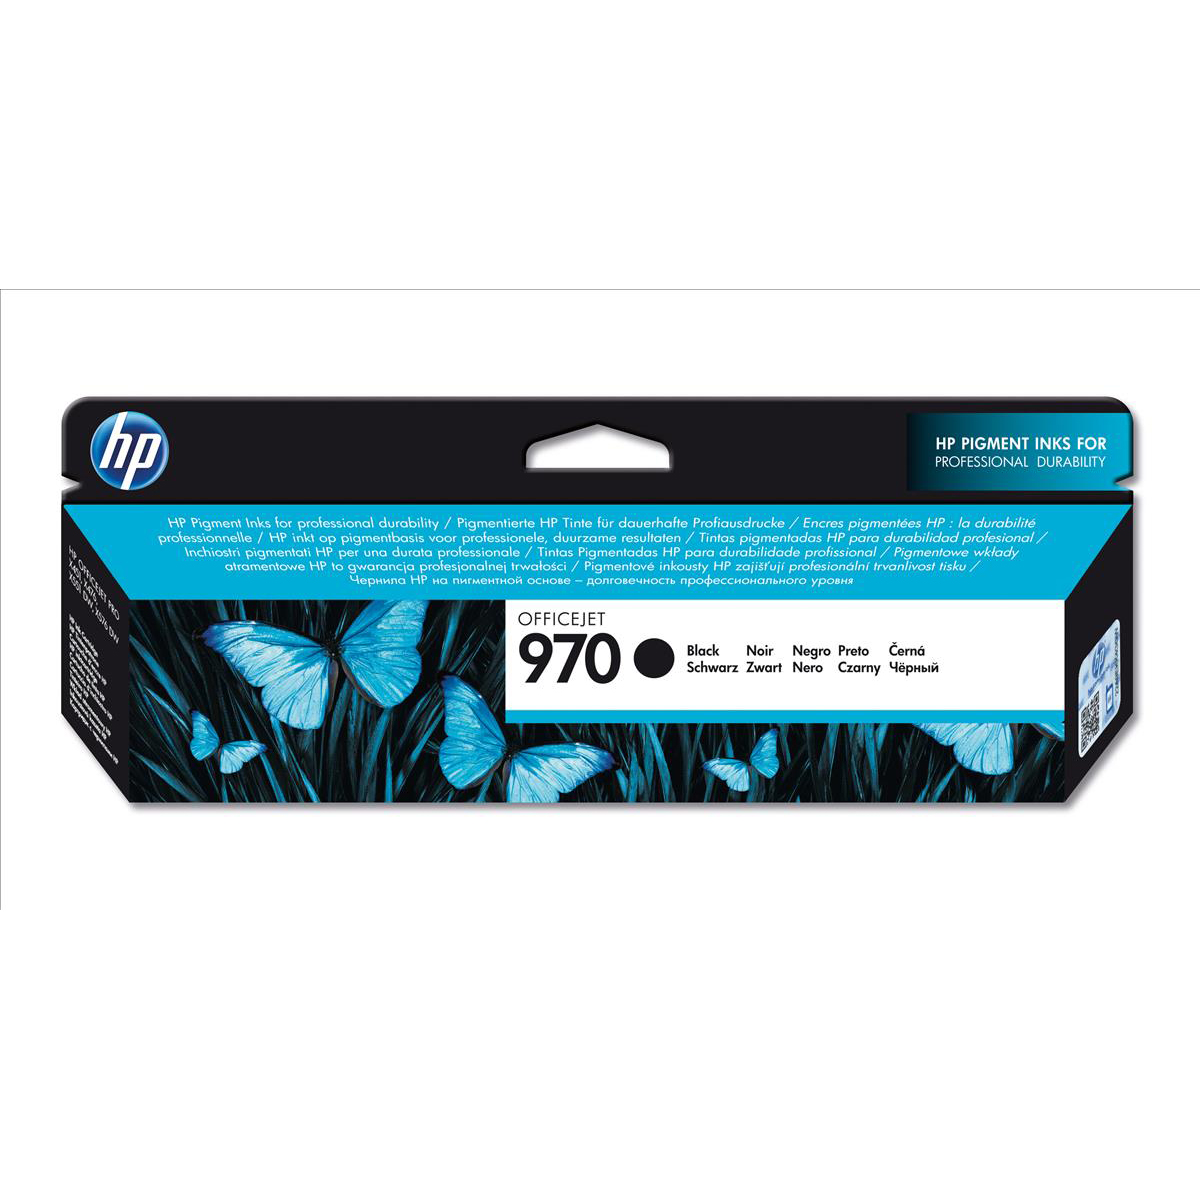 Hewlett Packard HP 970 Officejet Inkjet Cartridge Page Life 3000pp Black Ref CN621AE